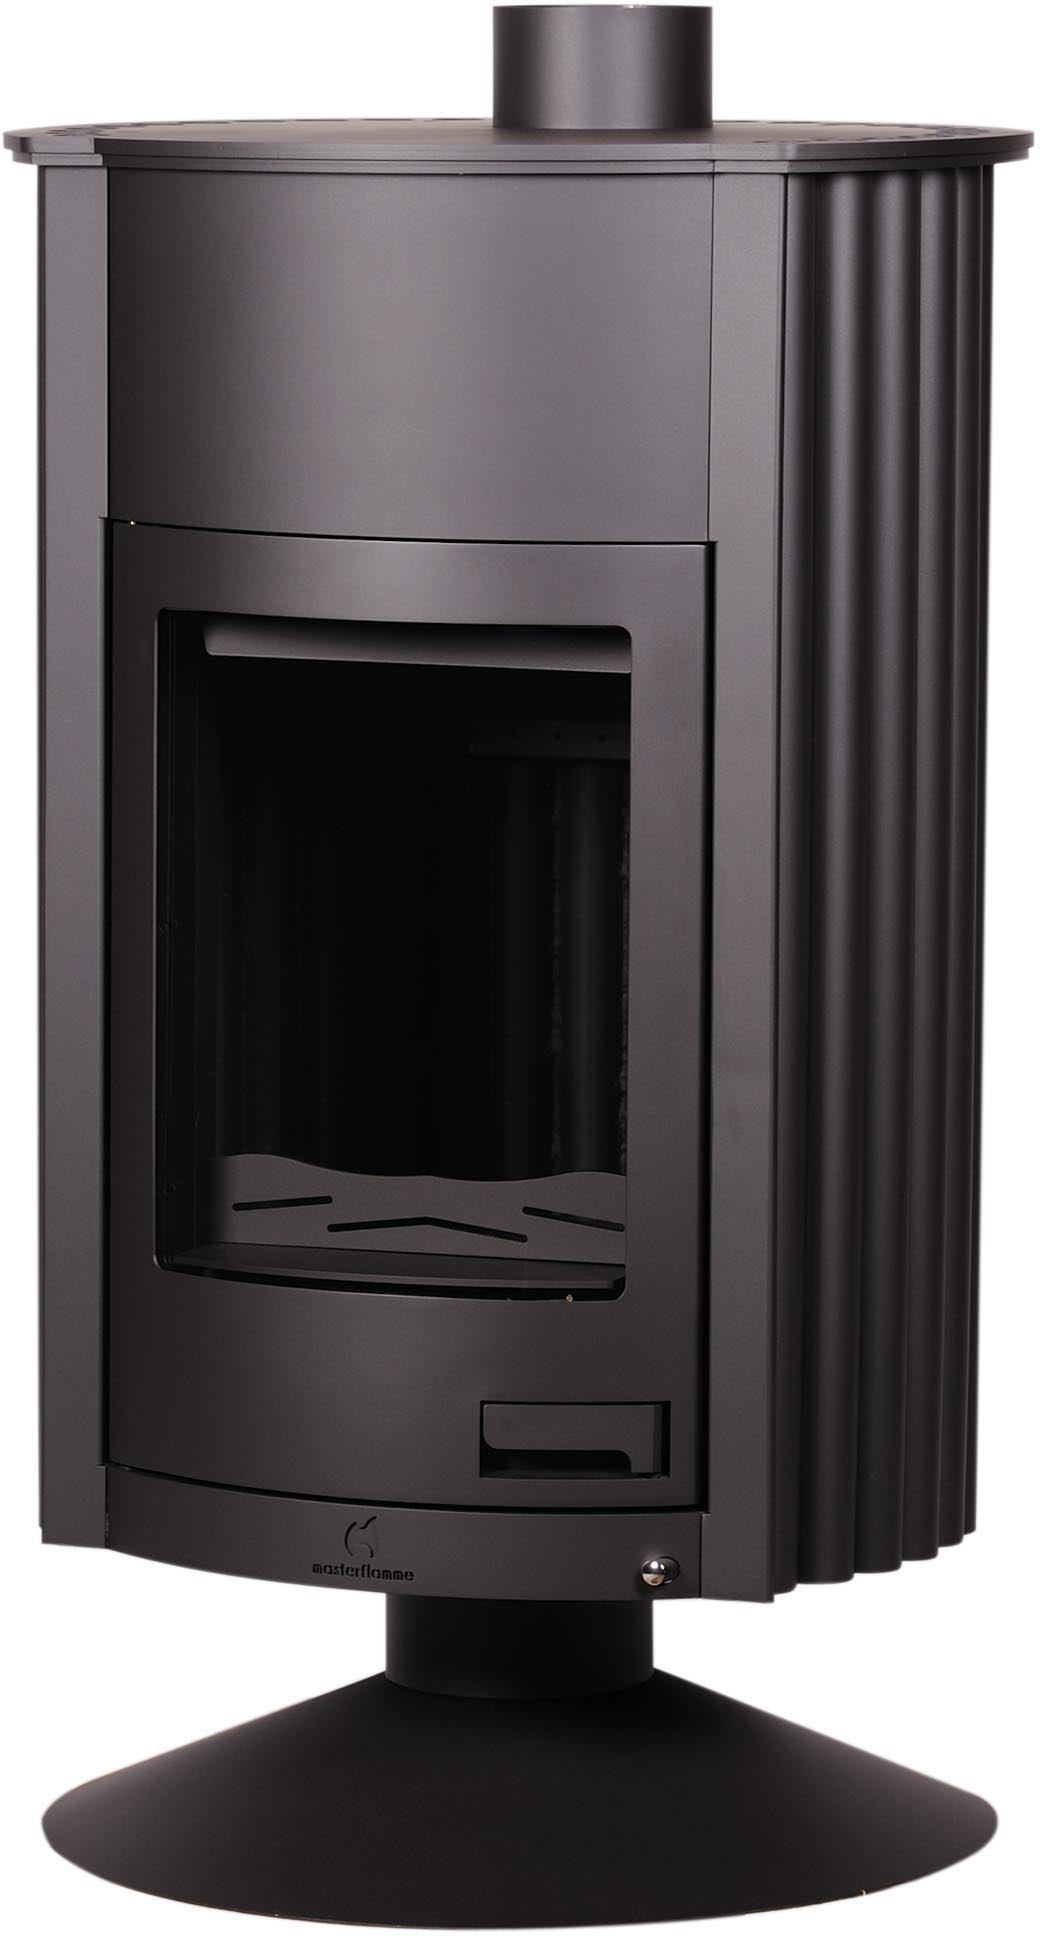 warmluftofen kaminofen masterflamme grande ii black 17 kw. Black Bedroom Furniture Sets. Home Design Ideas